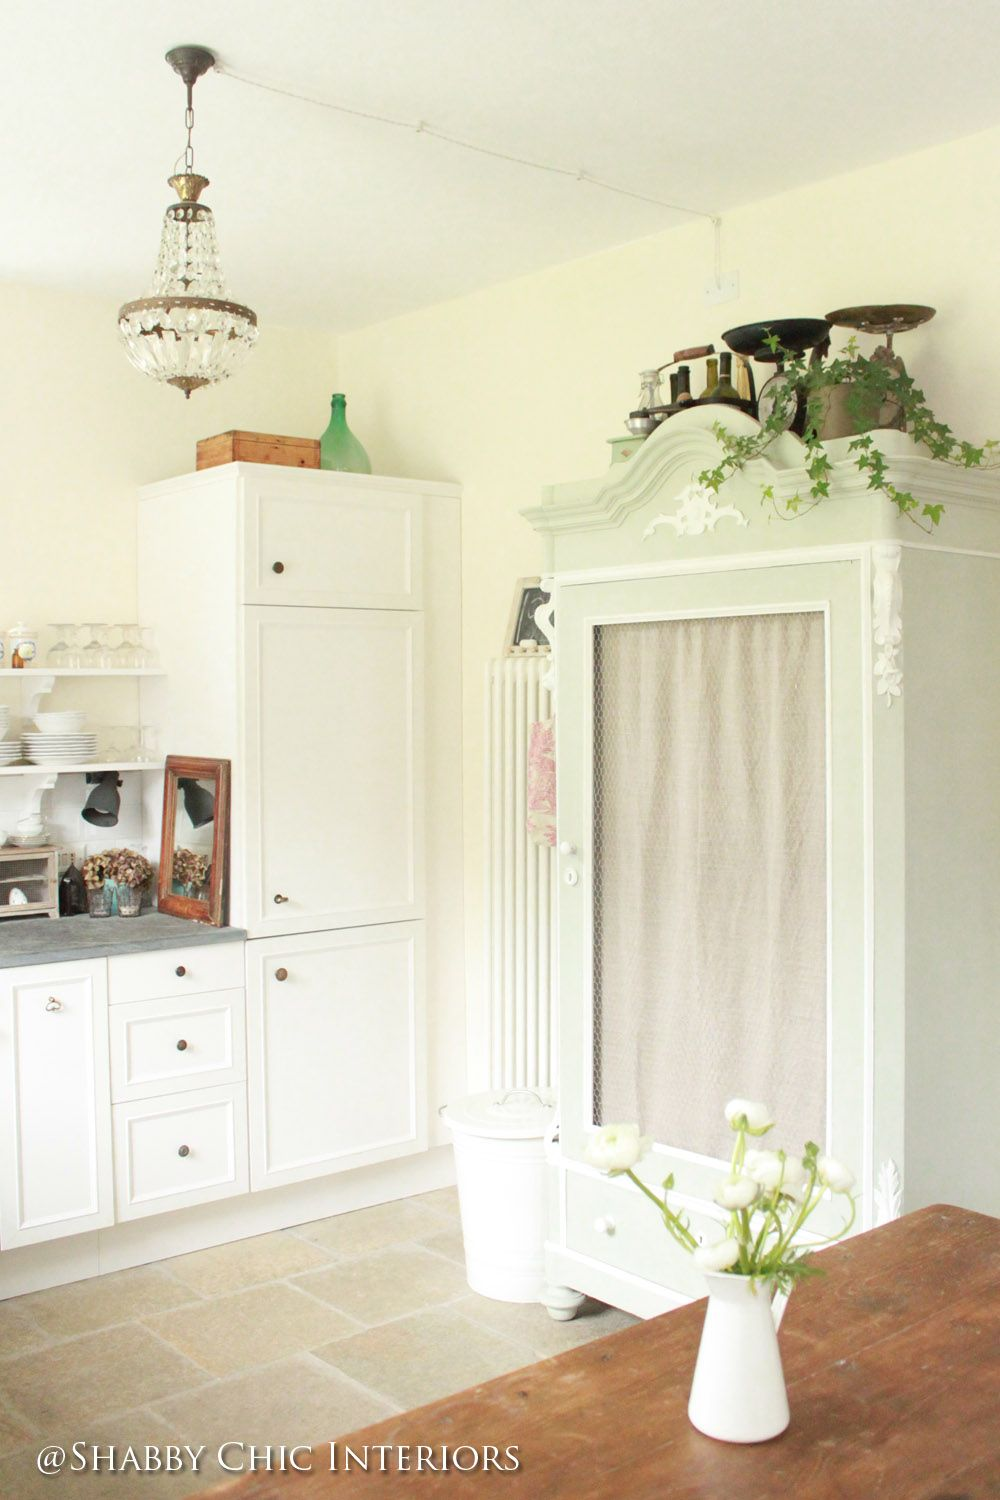 shabby chic interiors restyling di una cucina ikea vetrinetta shabby pinterest shabby. Black Bedroom Furniture Sets. Home Design Ideas